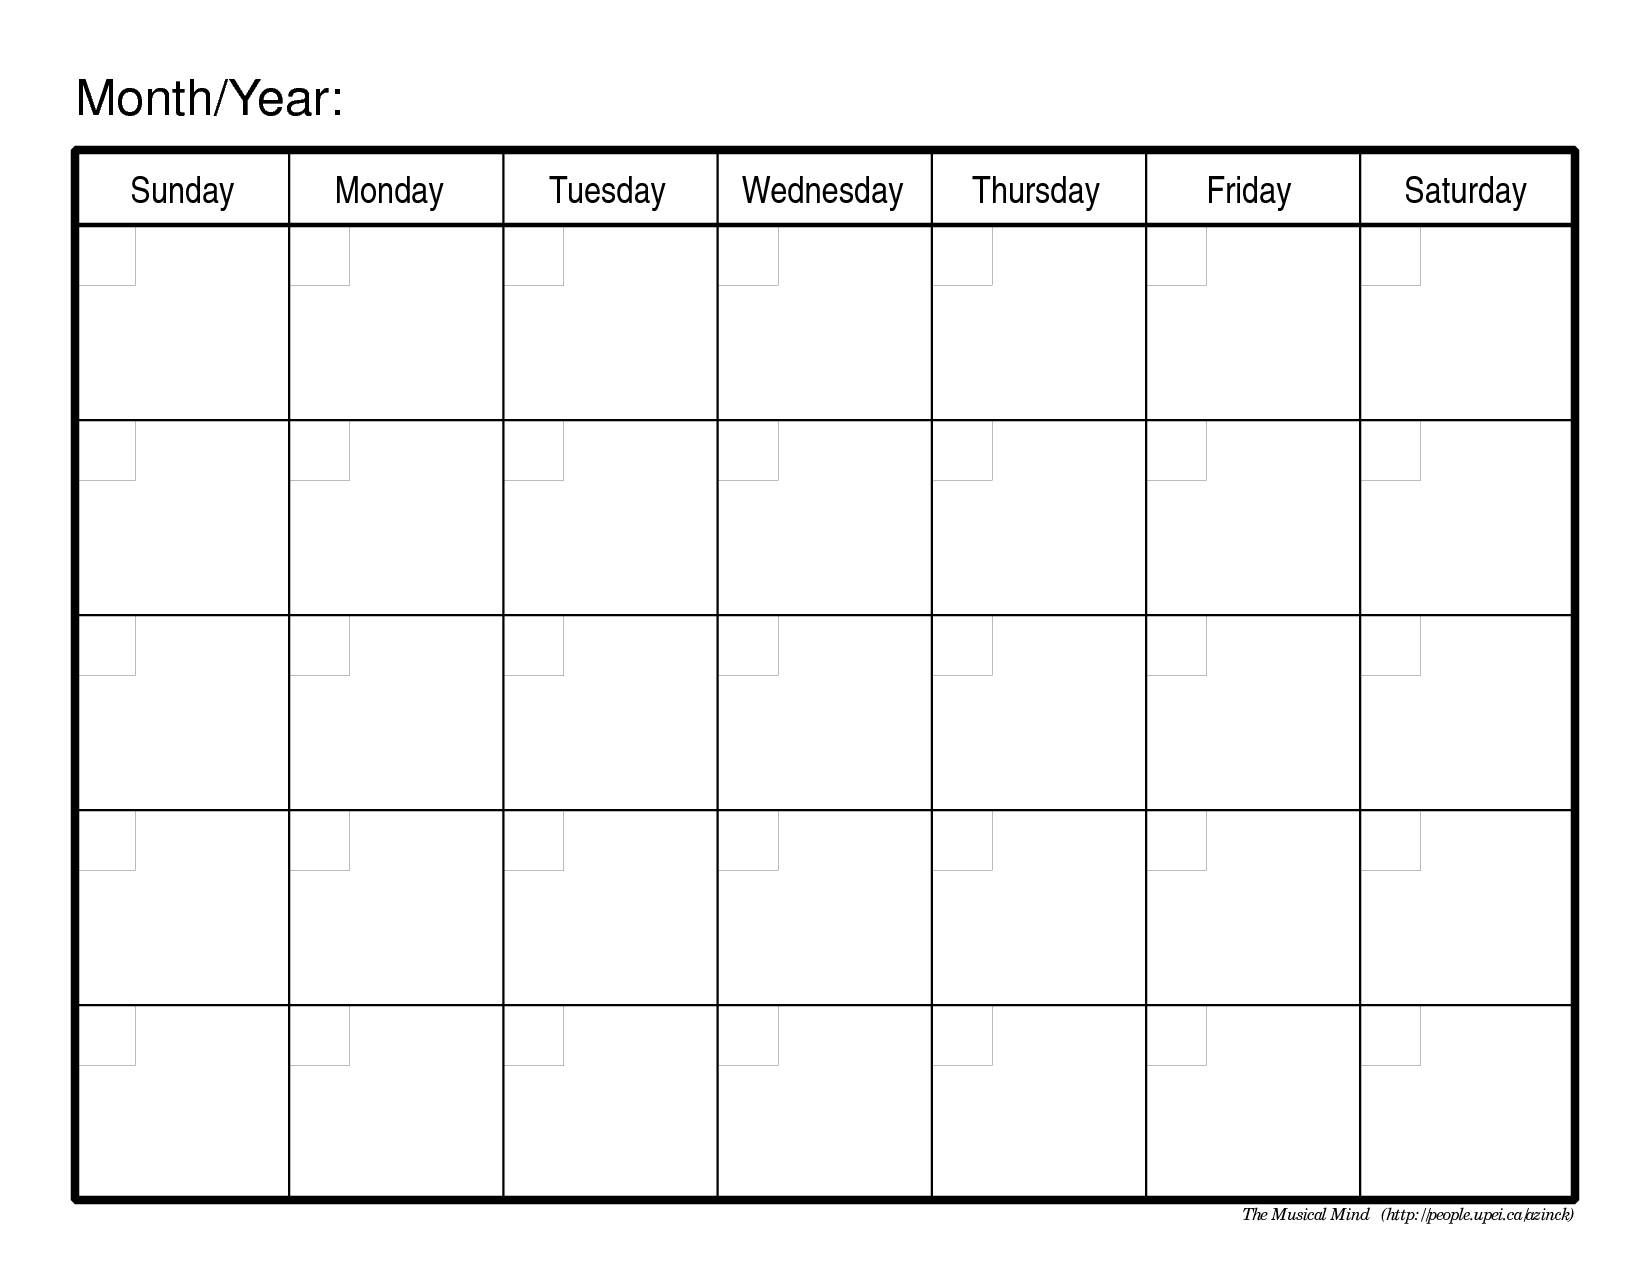 Month Calendar Template Word  Bolan.horizonconsulting.co within Blank Calendar Template Monday Through Friday